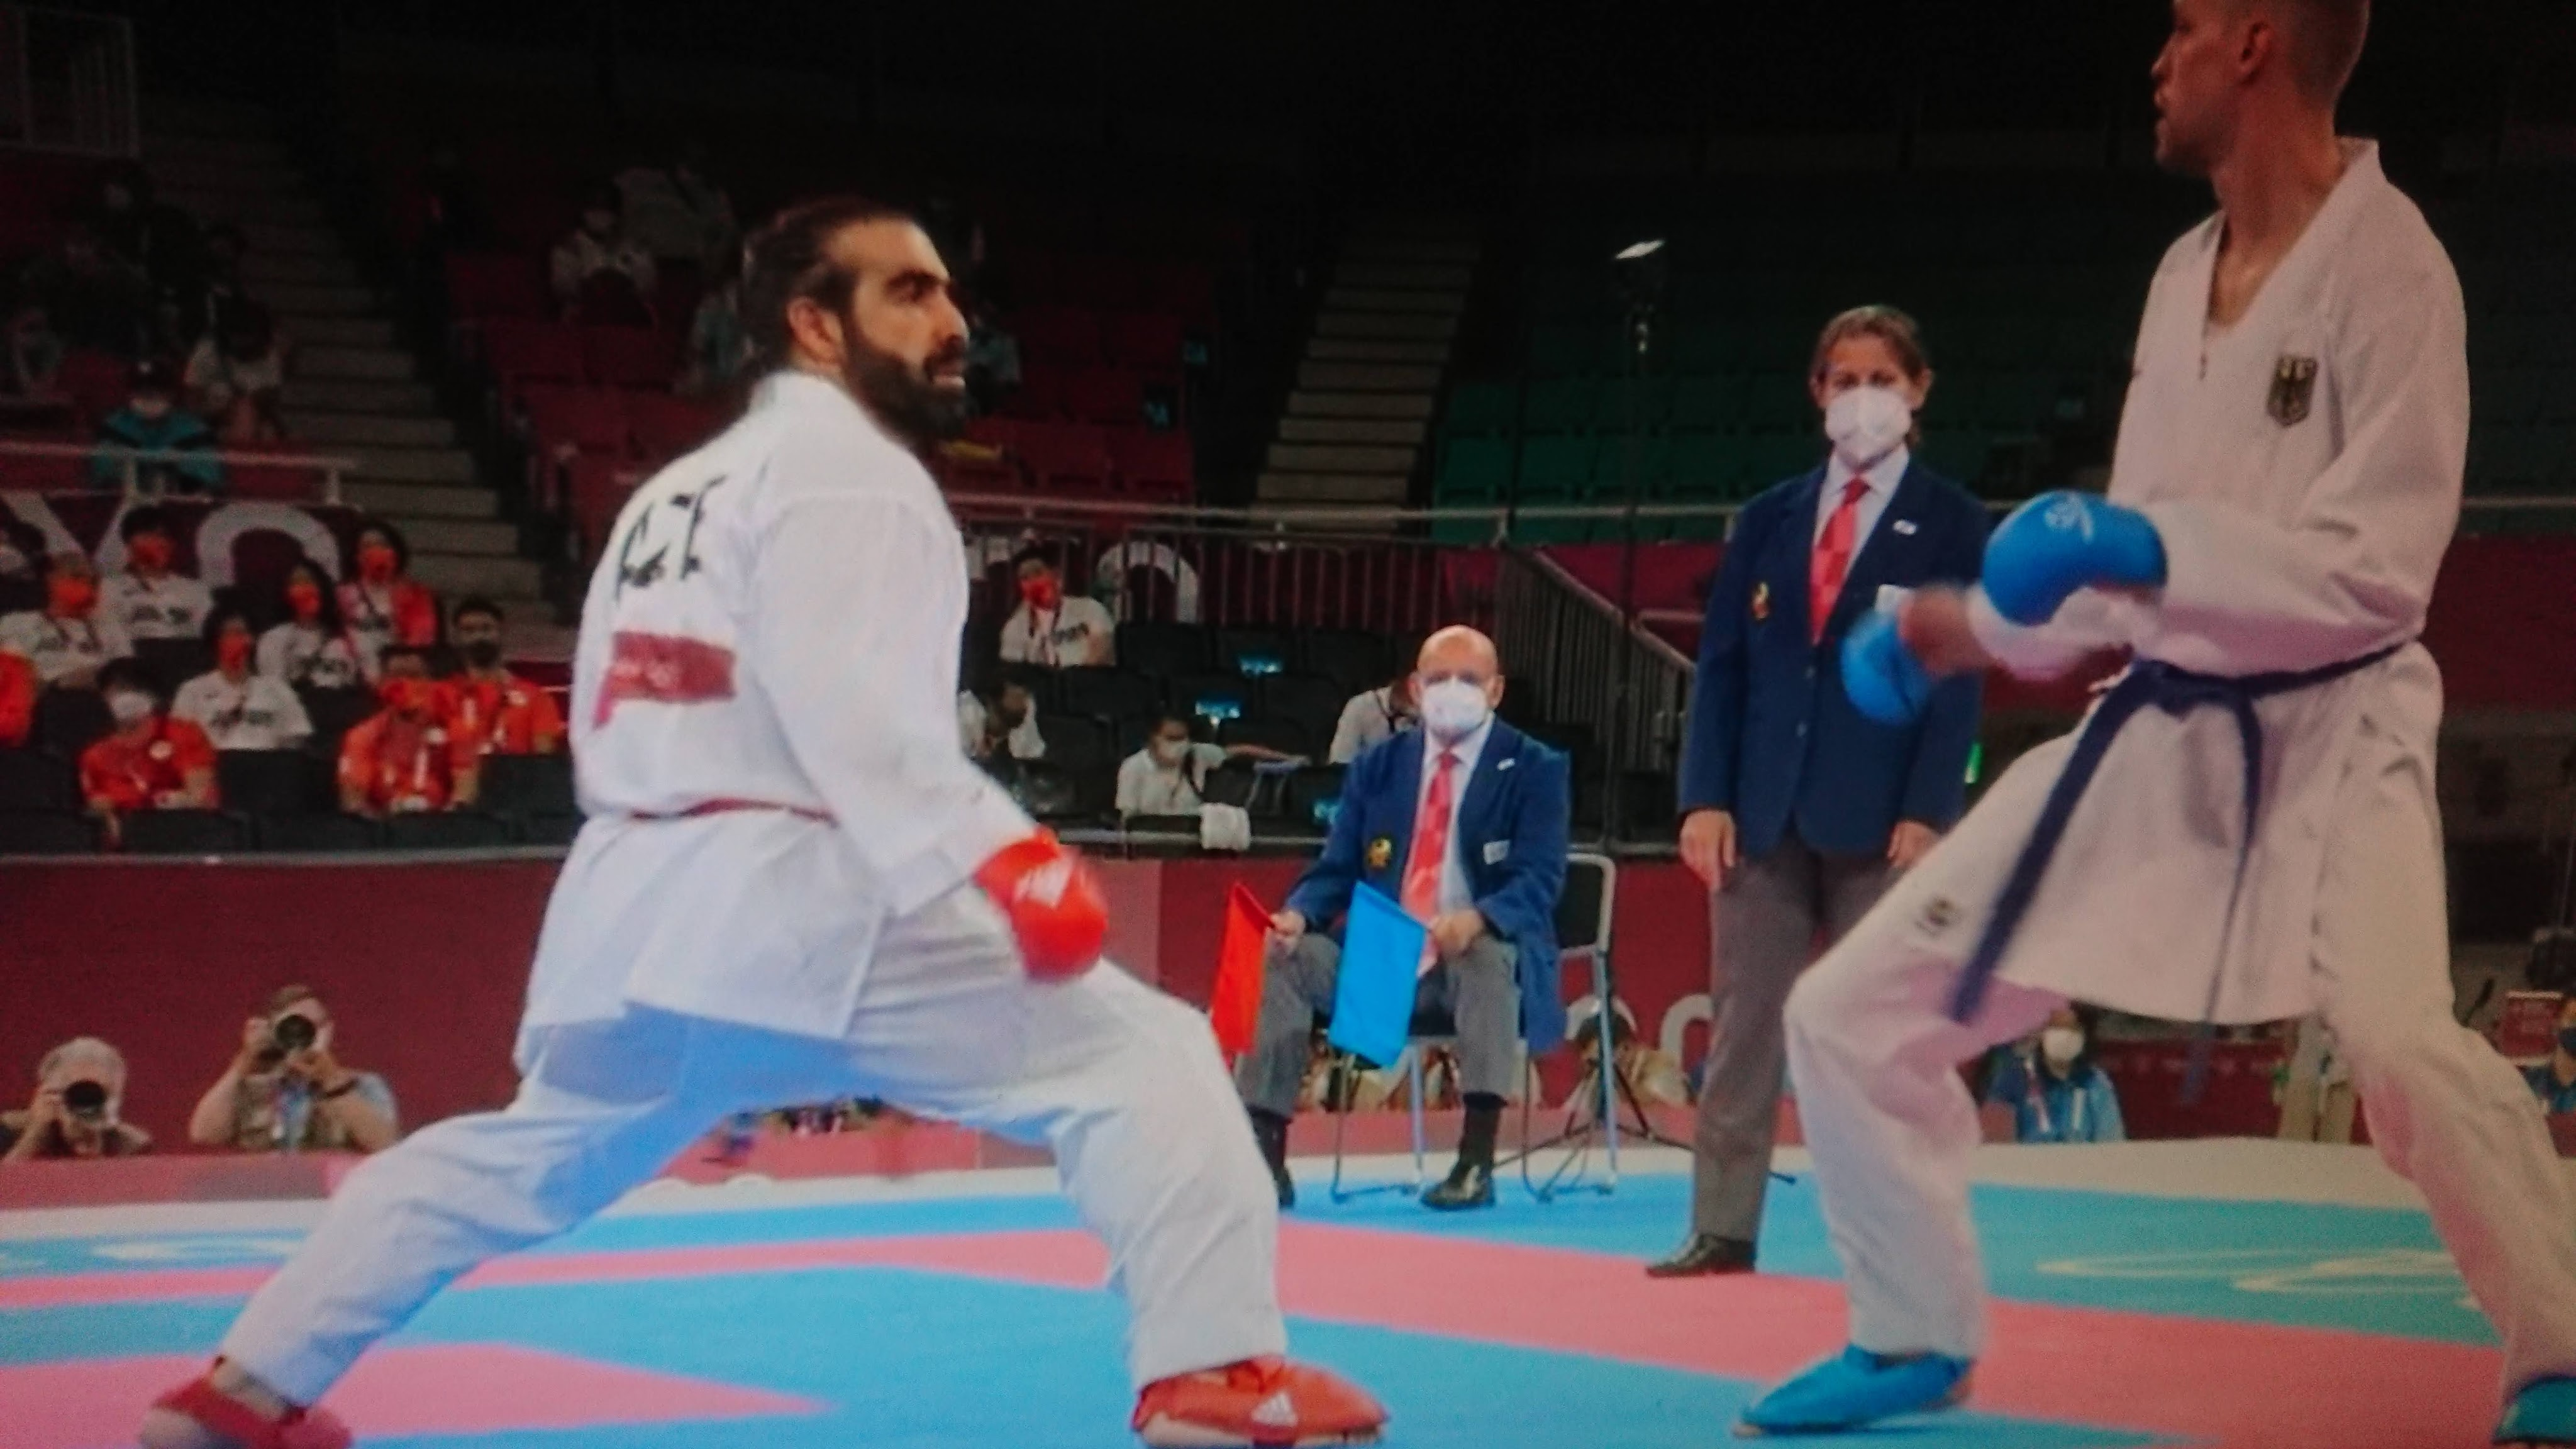 Rafael Aghayev and another competitor sparring in the Tokyo Olympics